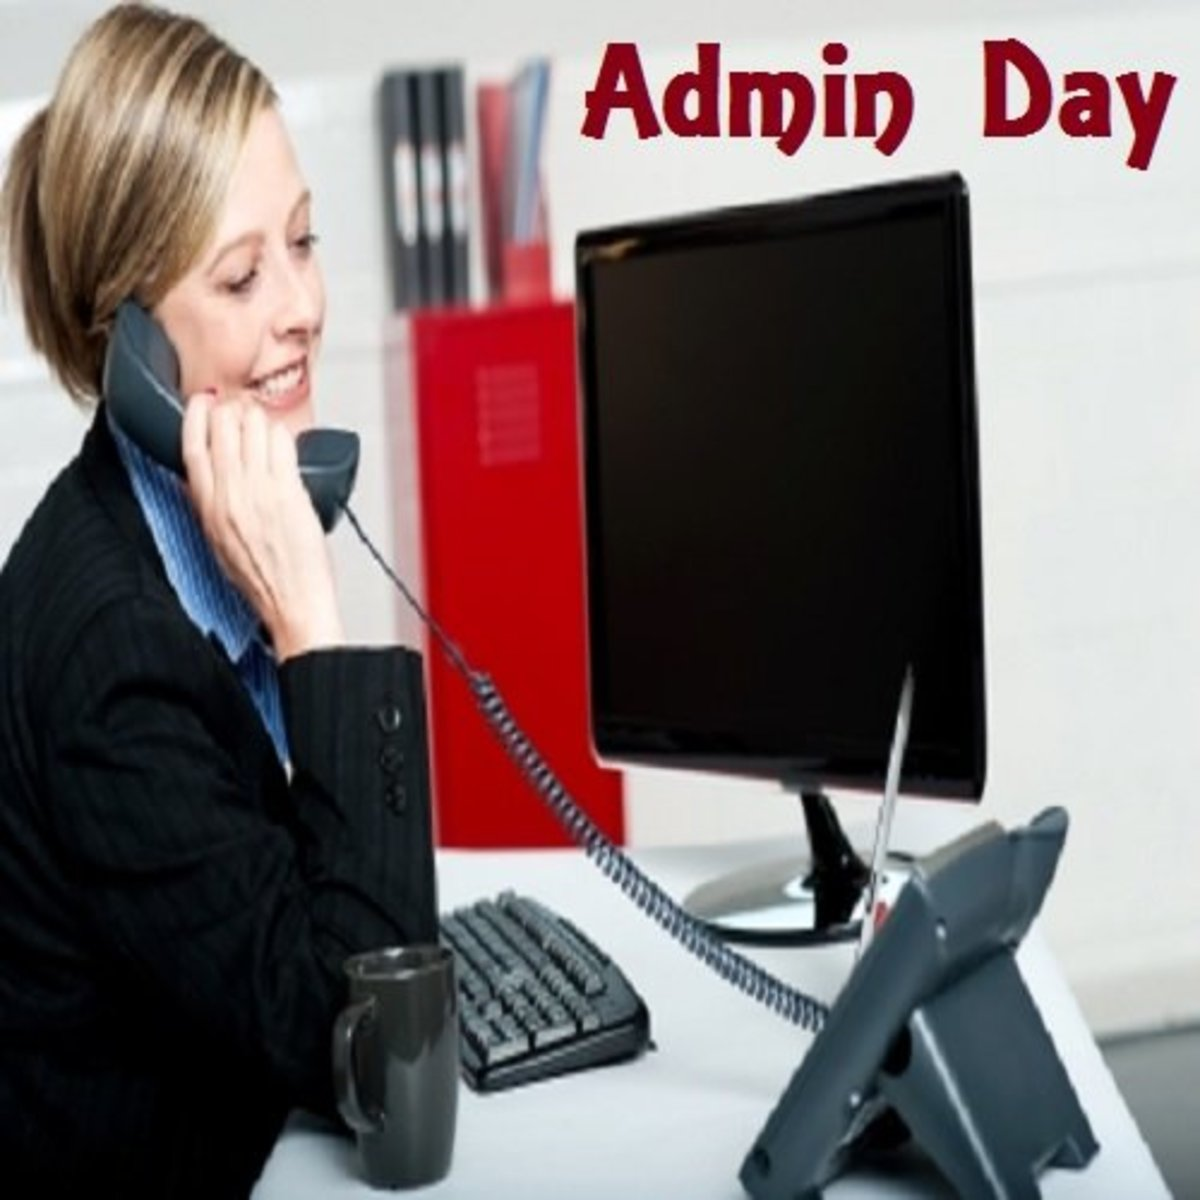 Administrative Professionals' Day Gift Ideas - Also for Assistant's, Secretary's, Receptionist's (Admin Day)